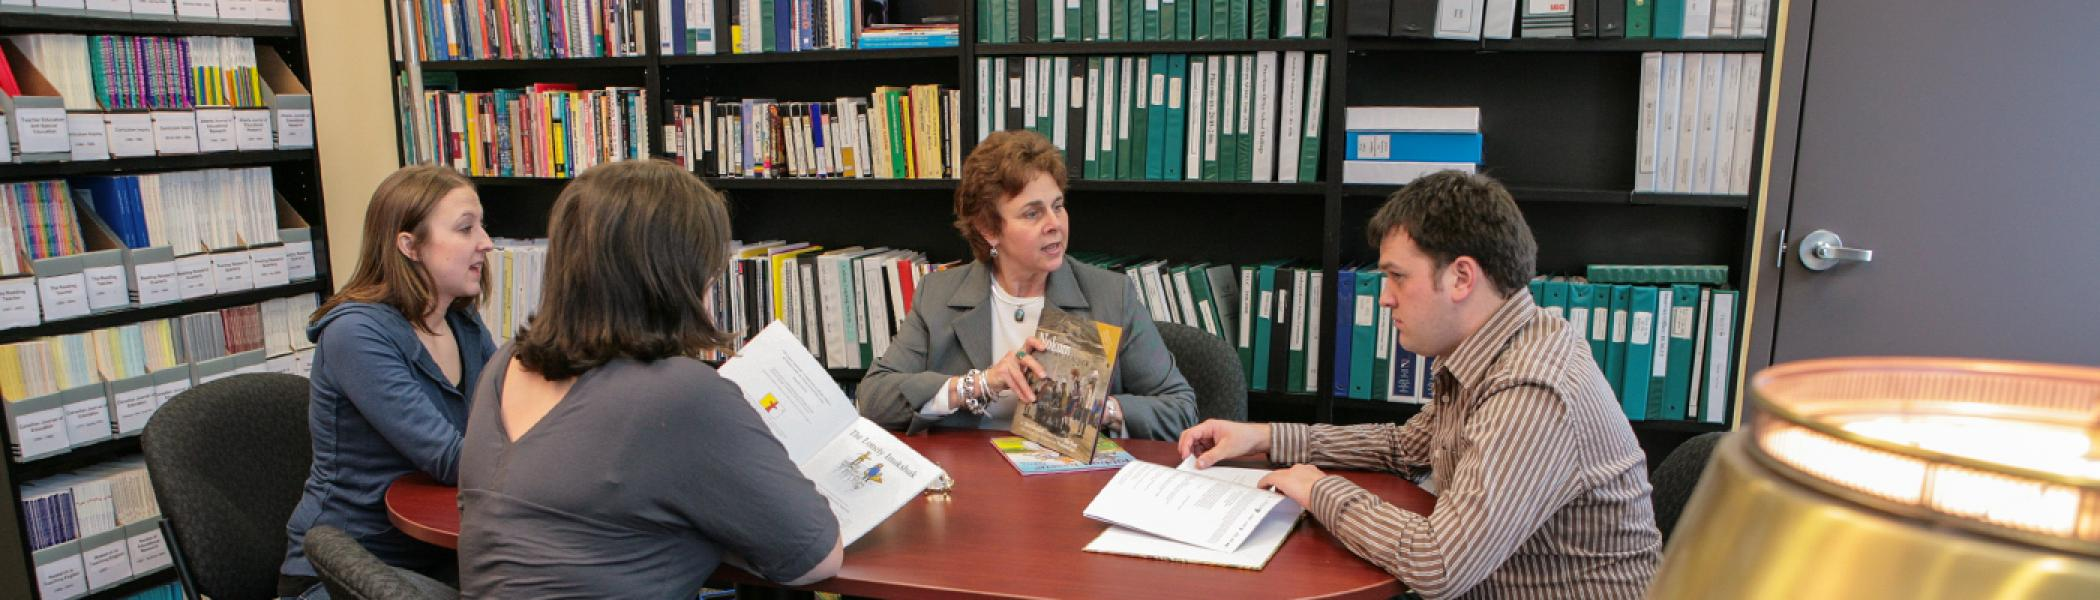 Dr. Deborah Berill sitting at a table with 3 students in an office surrounded by bookcases